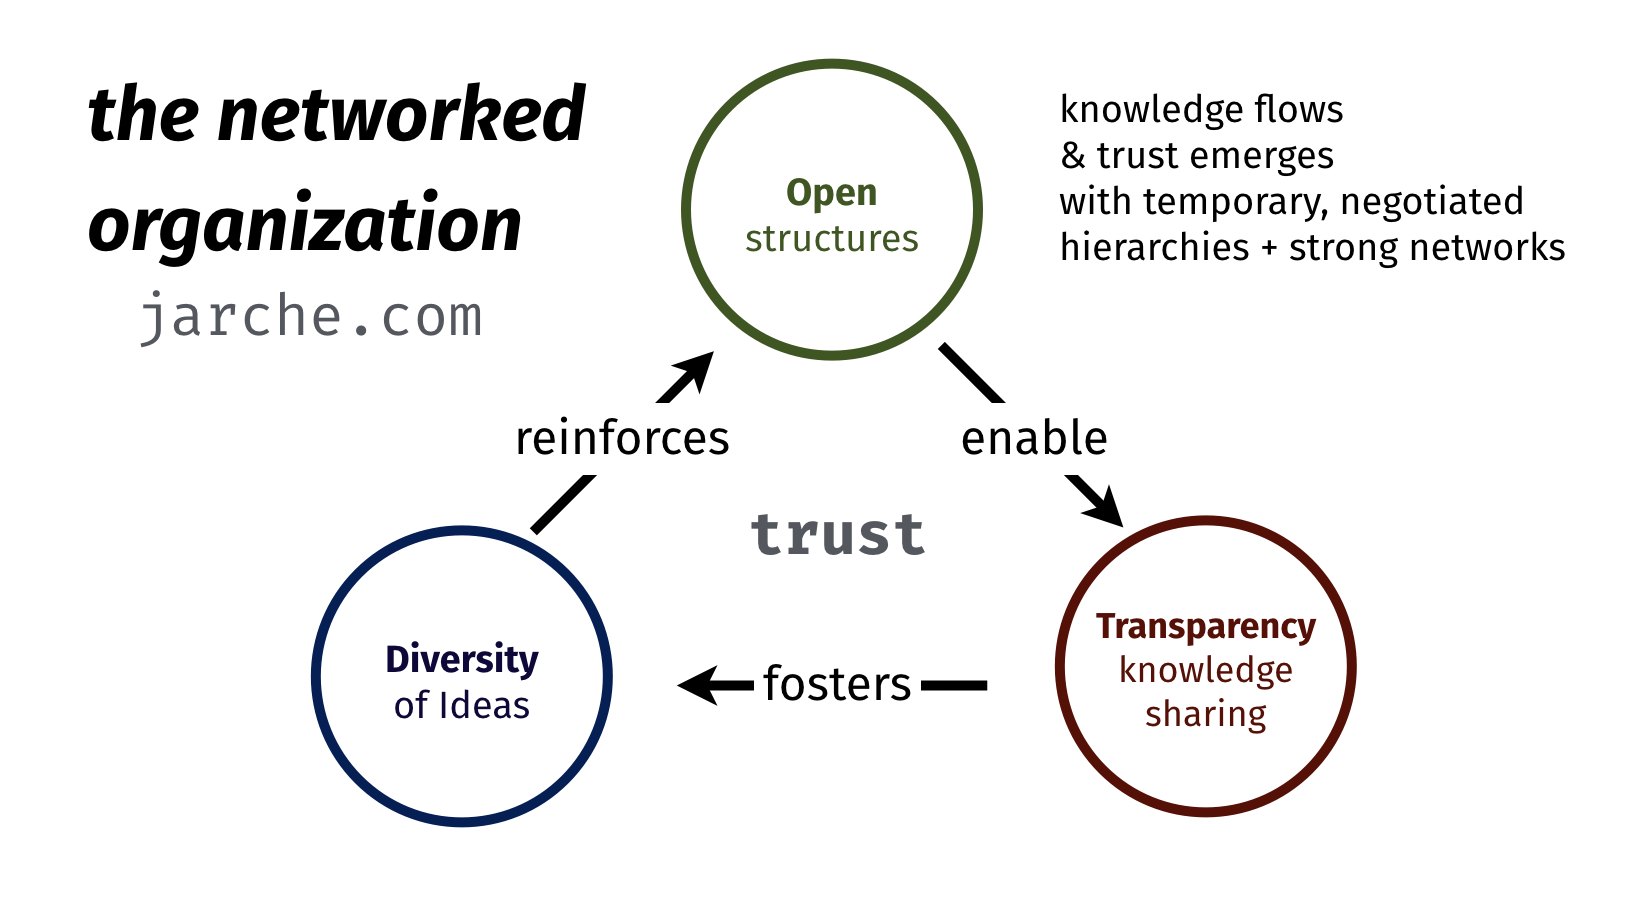 knowedge flows and trust emerges with openness